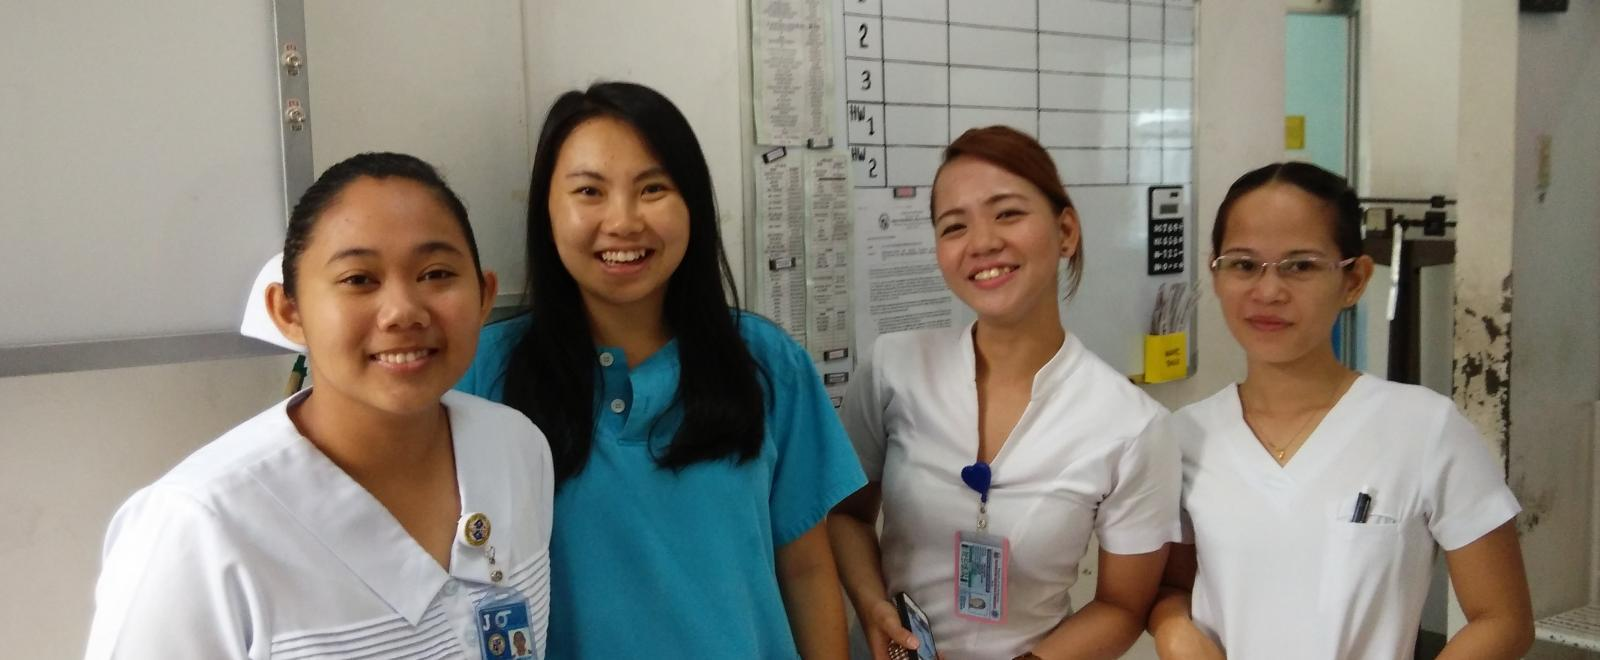 Female doctors in the Phillipines with their recent medical internship student.